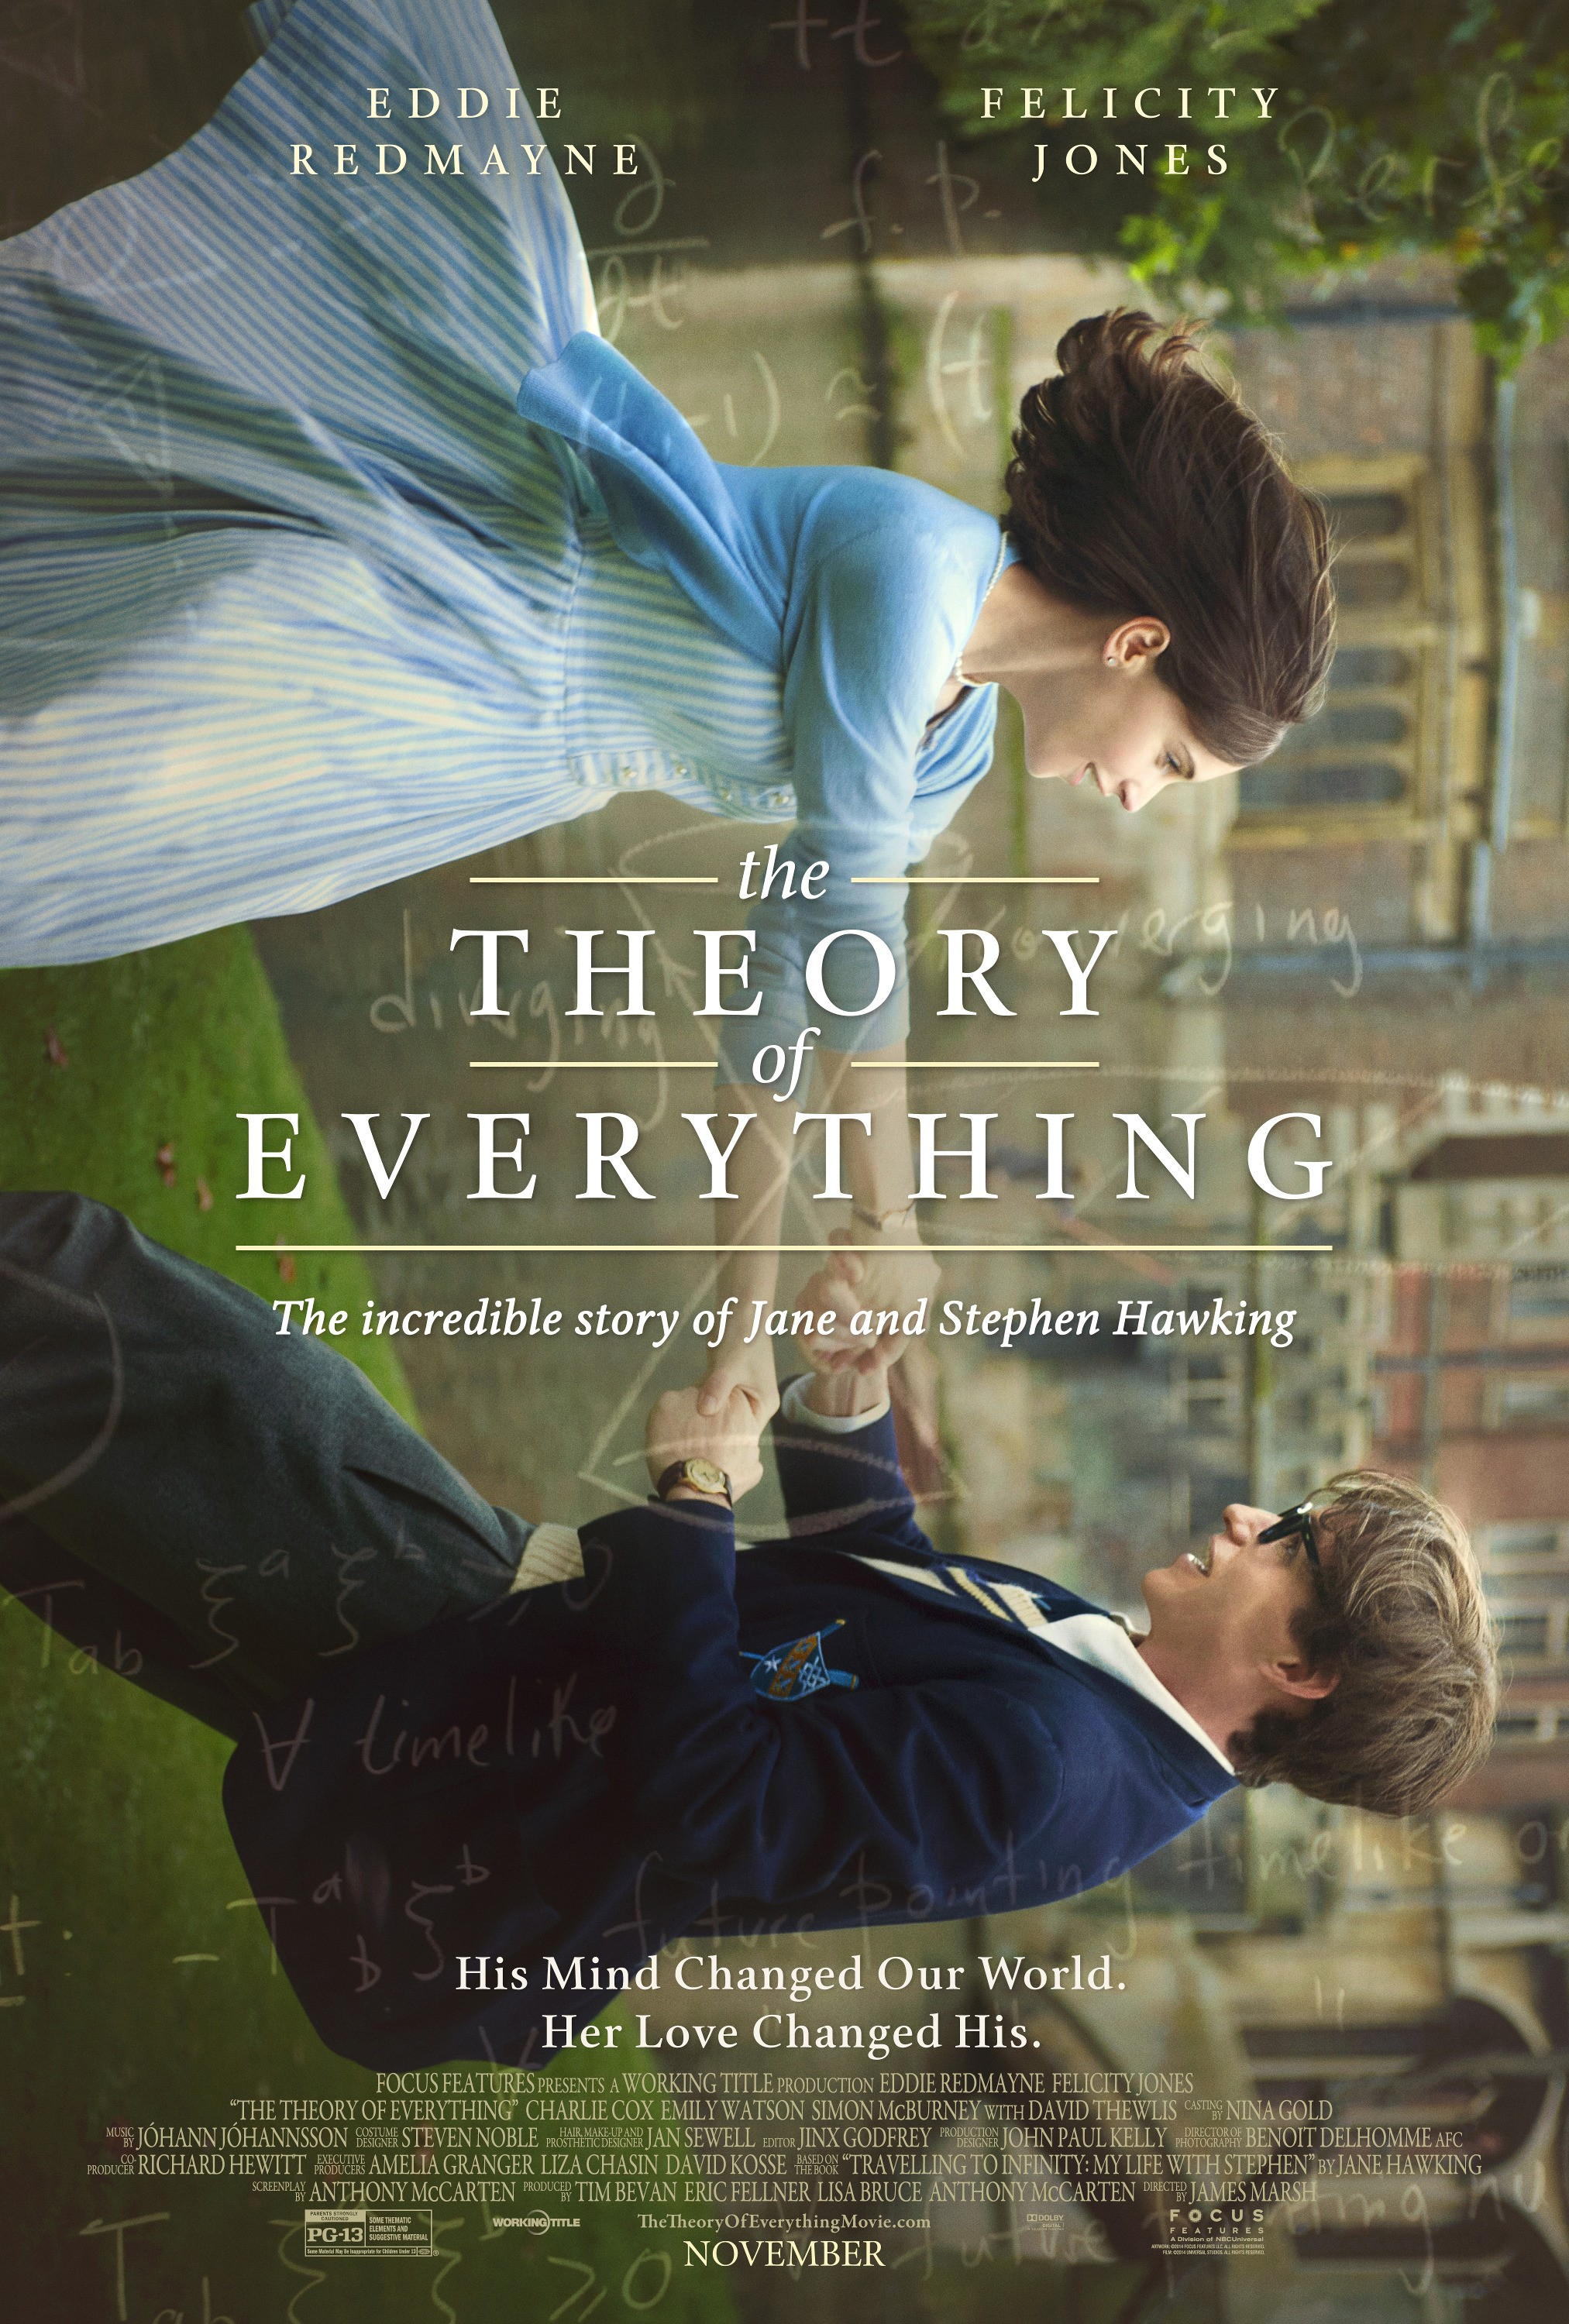 The Theory of Everything-Official Poster Banner PROMO XXLG-26AGOSTO2014